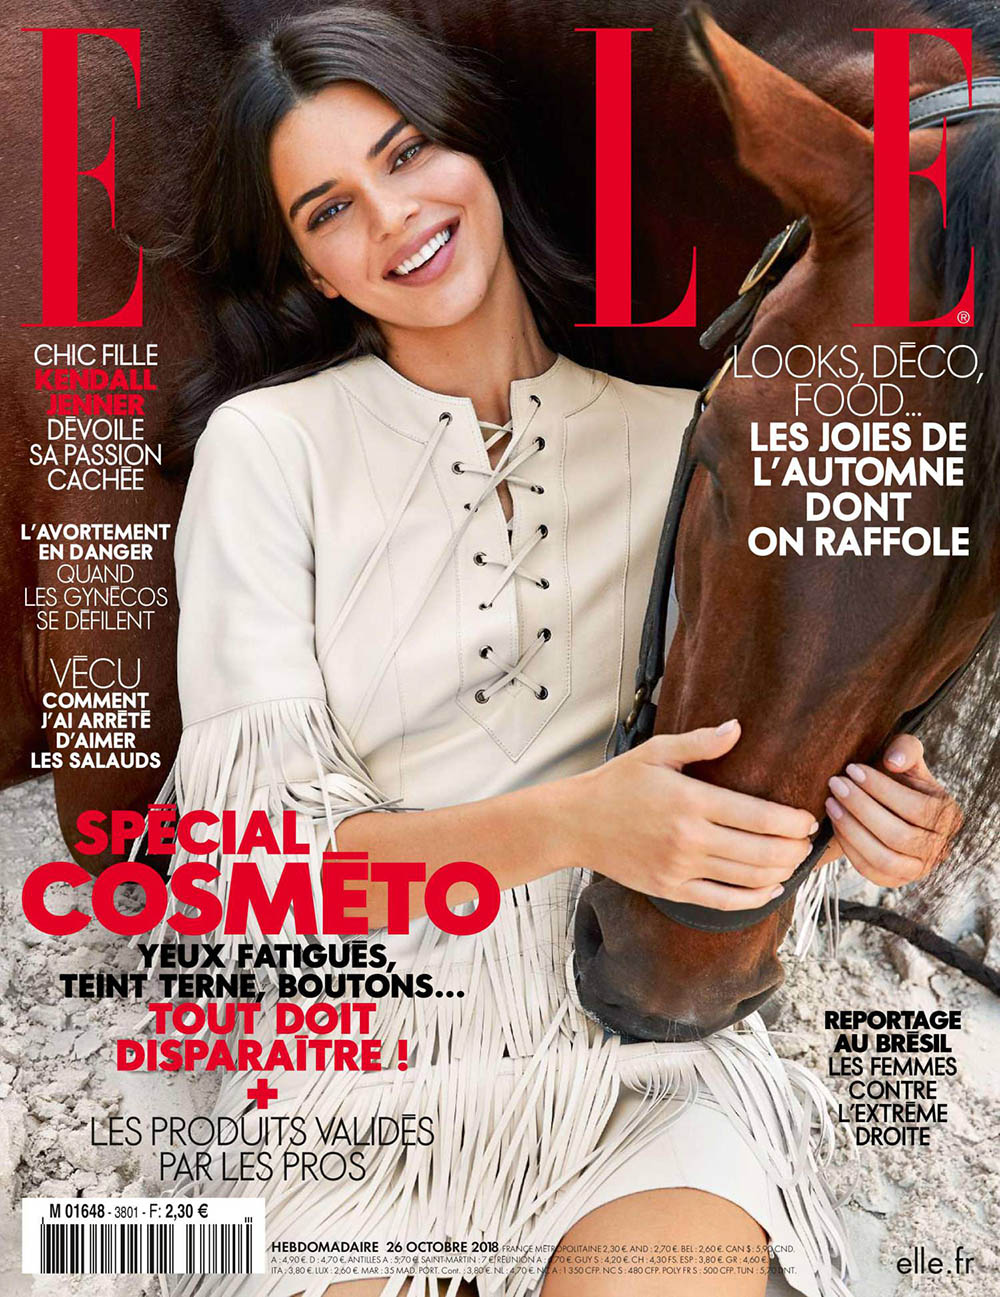 Kendall Jenner covers Elle France October 26th, 2018 by Fred Meylan